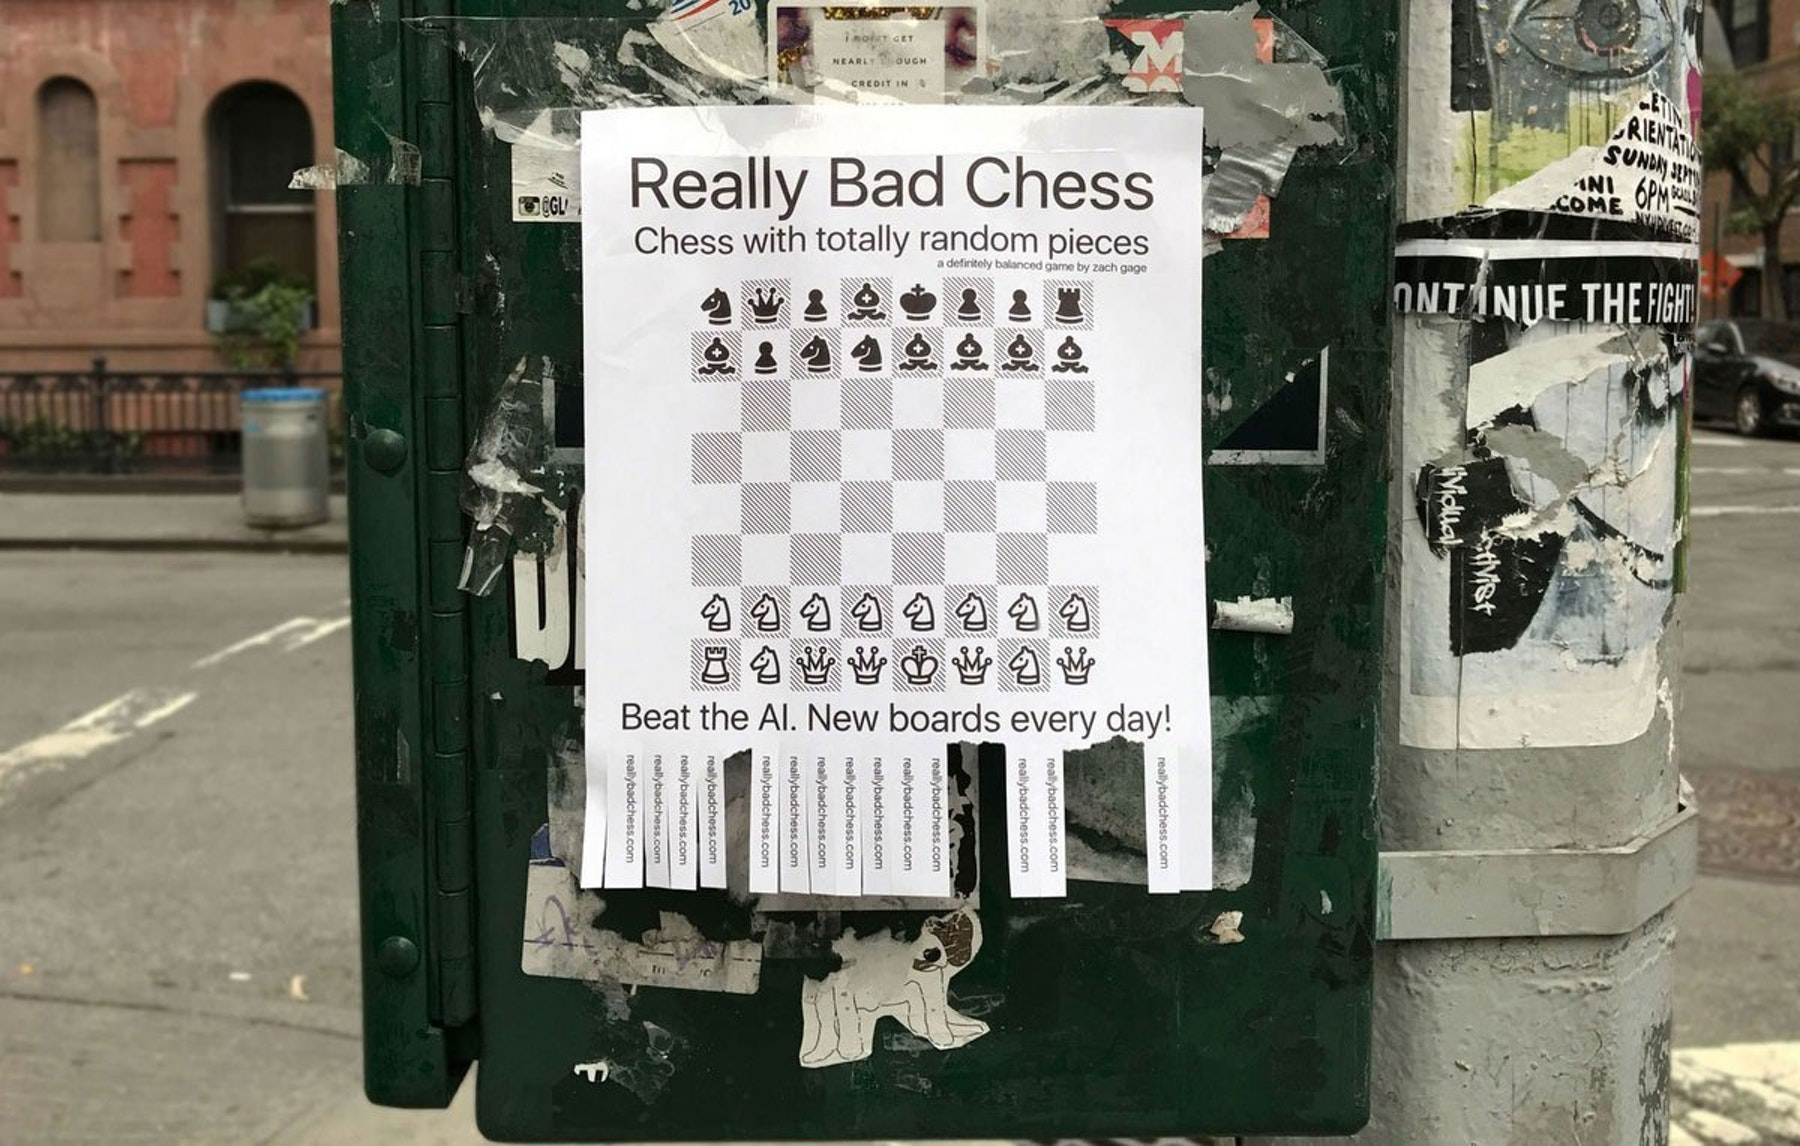 A flyer for Really Bad Chess in New York City.